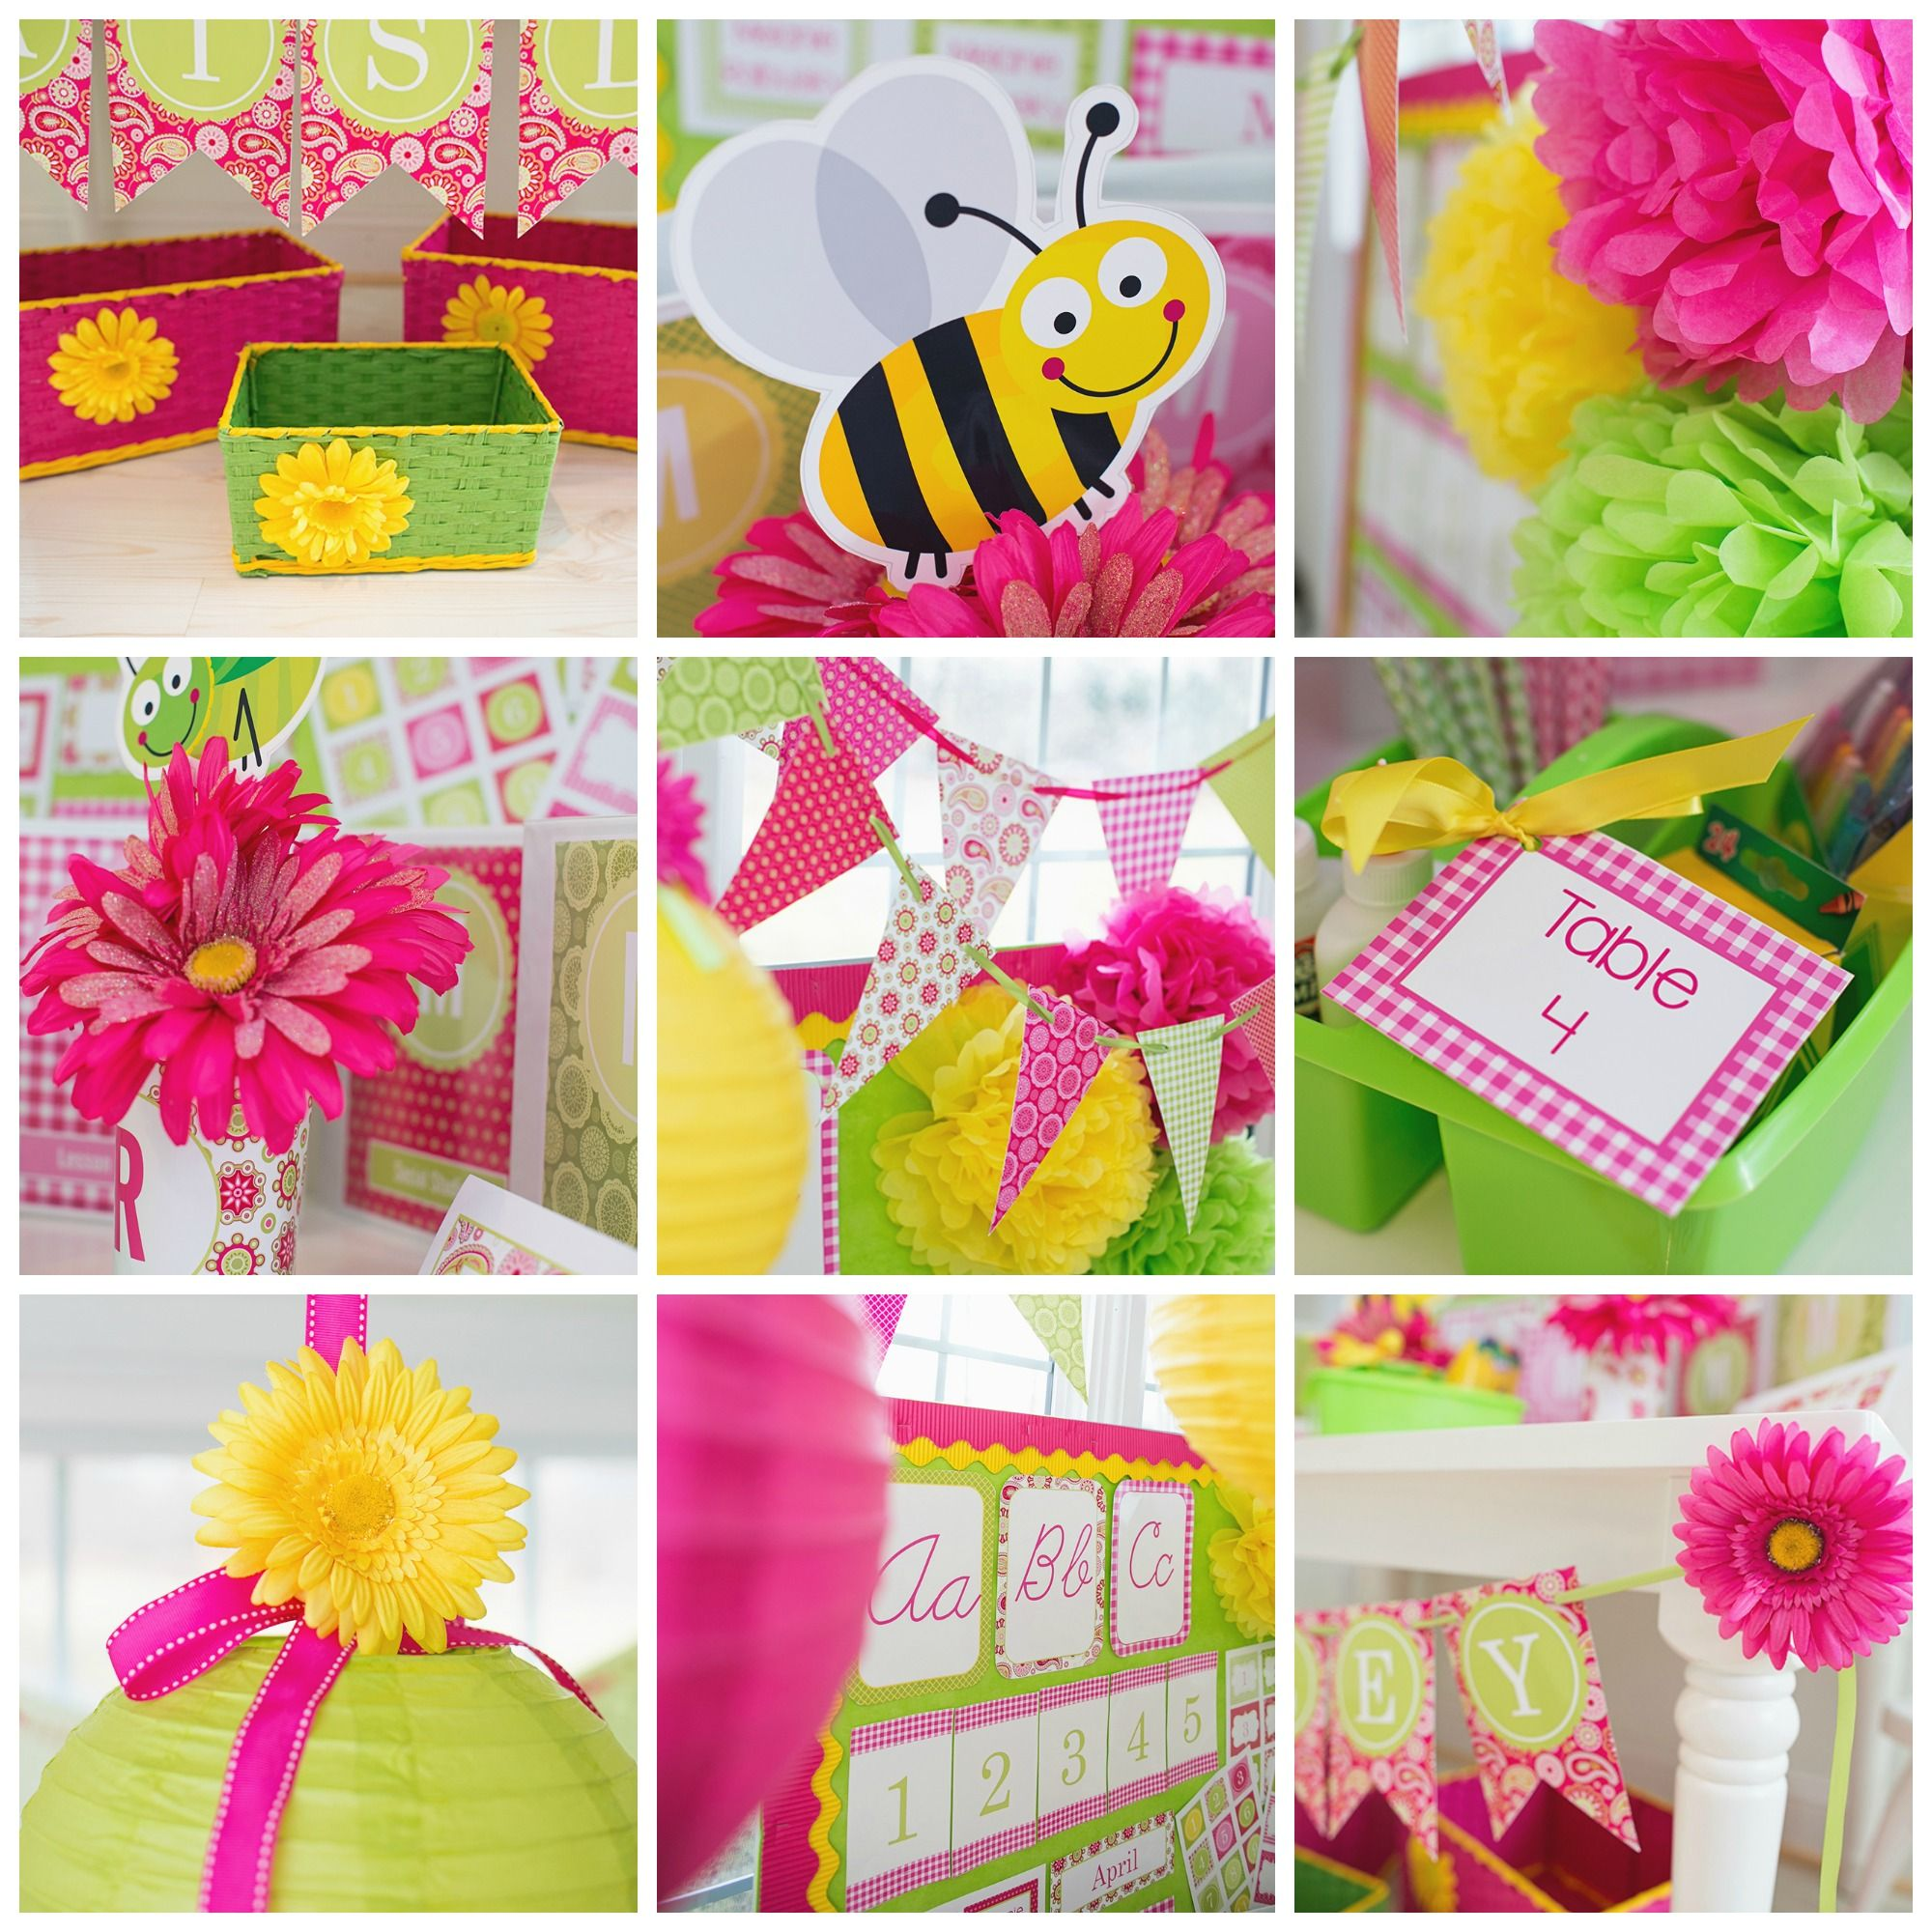 Classroom Decoration Theme Ideas Part - 34: Pink Paisley Garden Classroom Theme And Decor By Schoolgirl Style